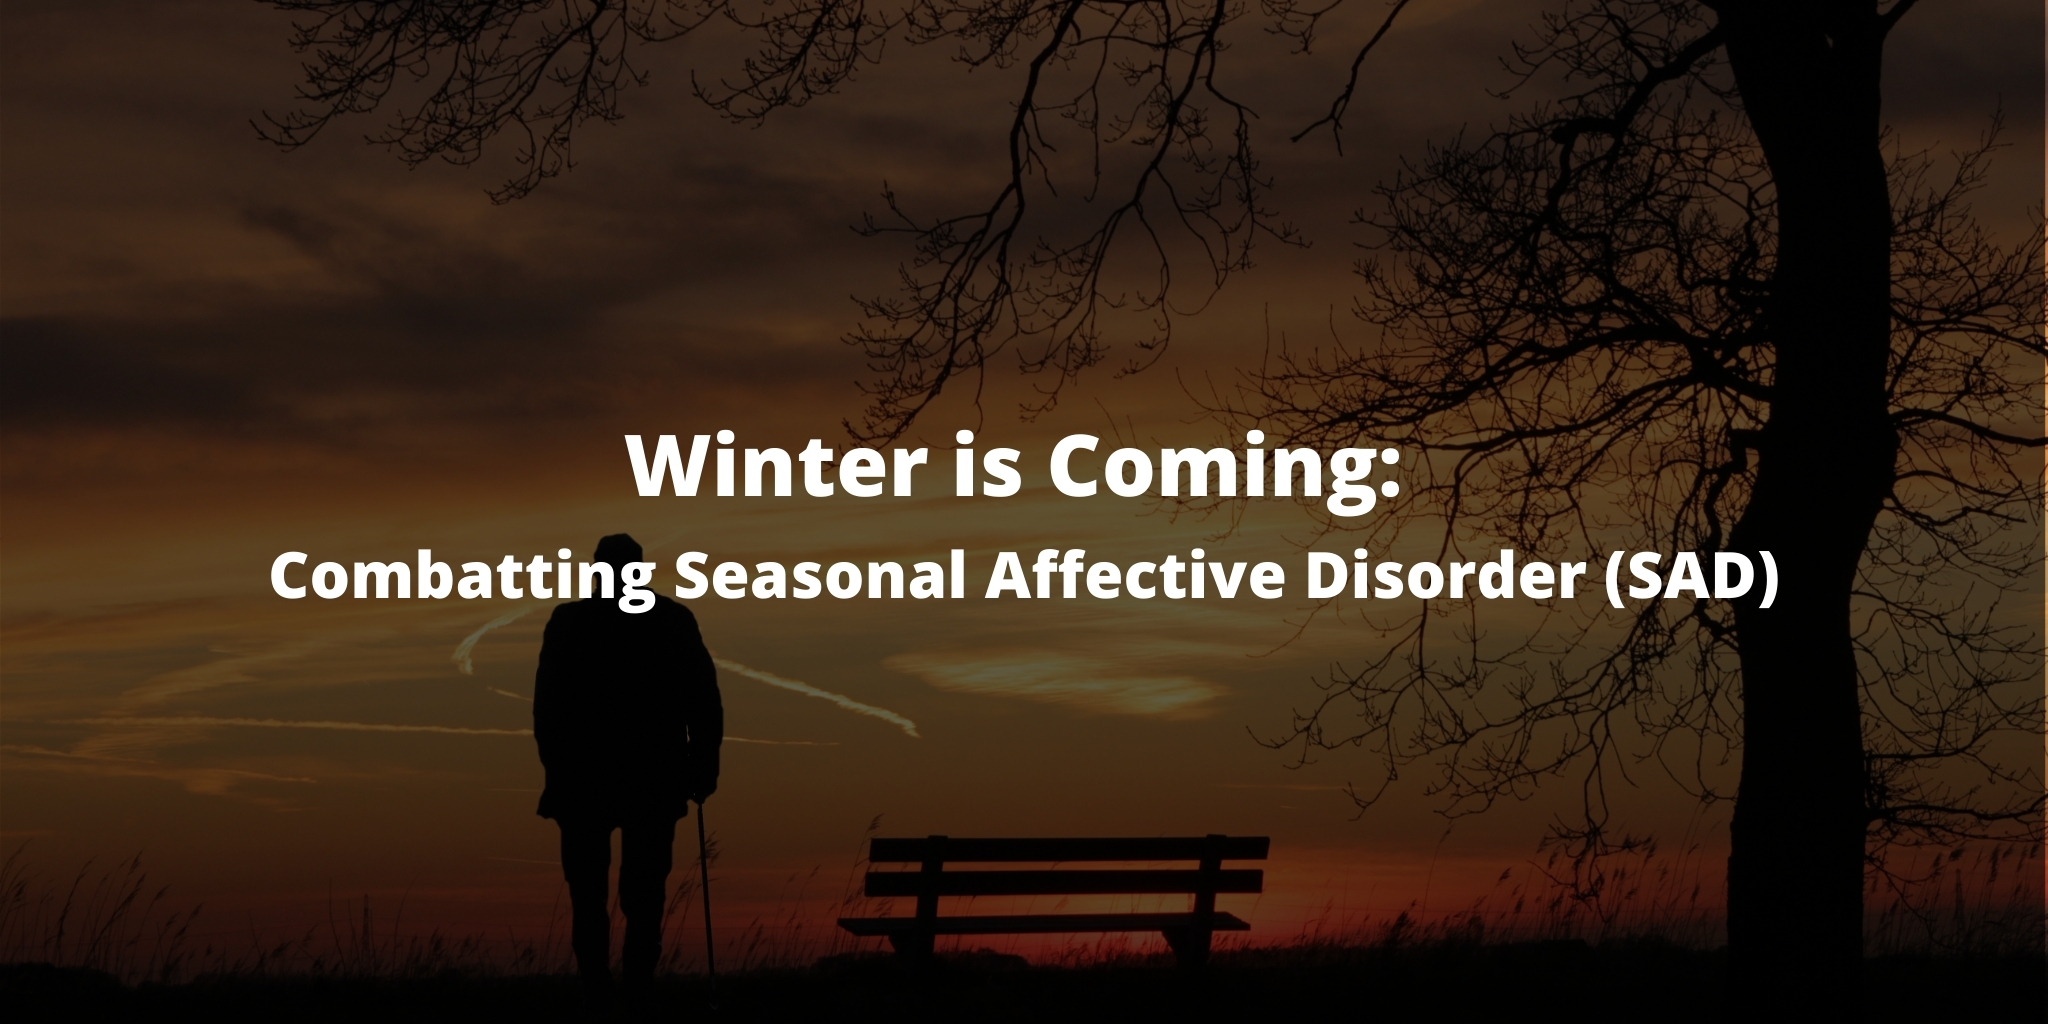 Winter is Coming: Combatting Seasonal Affective Disorder (SAD)